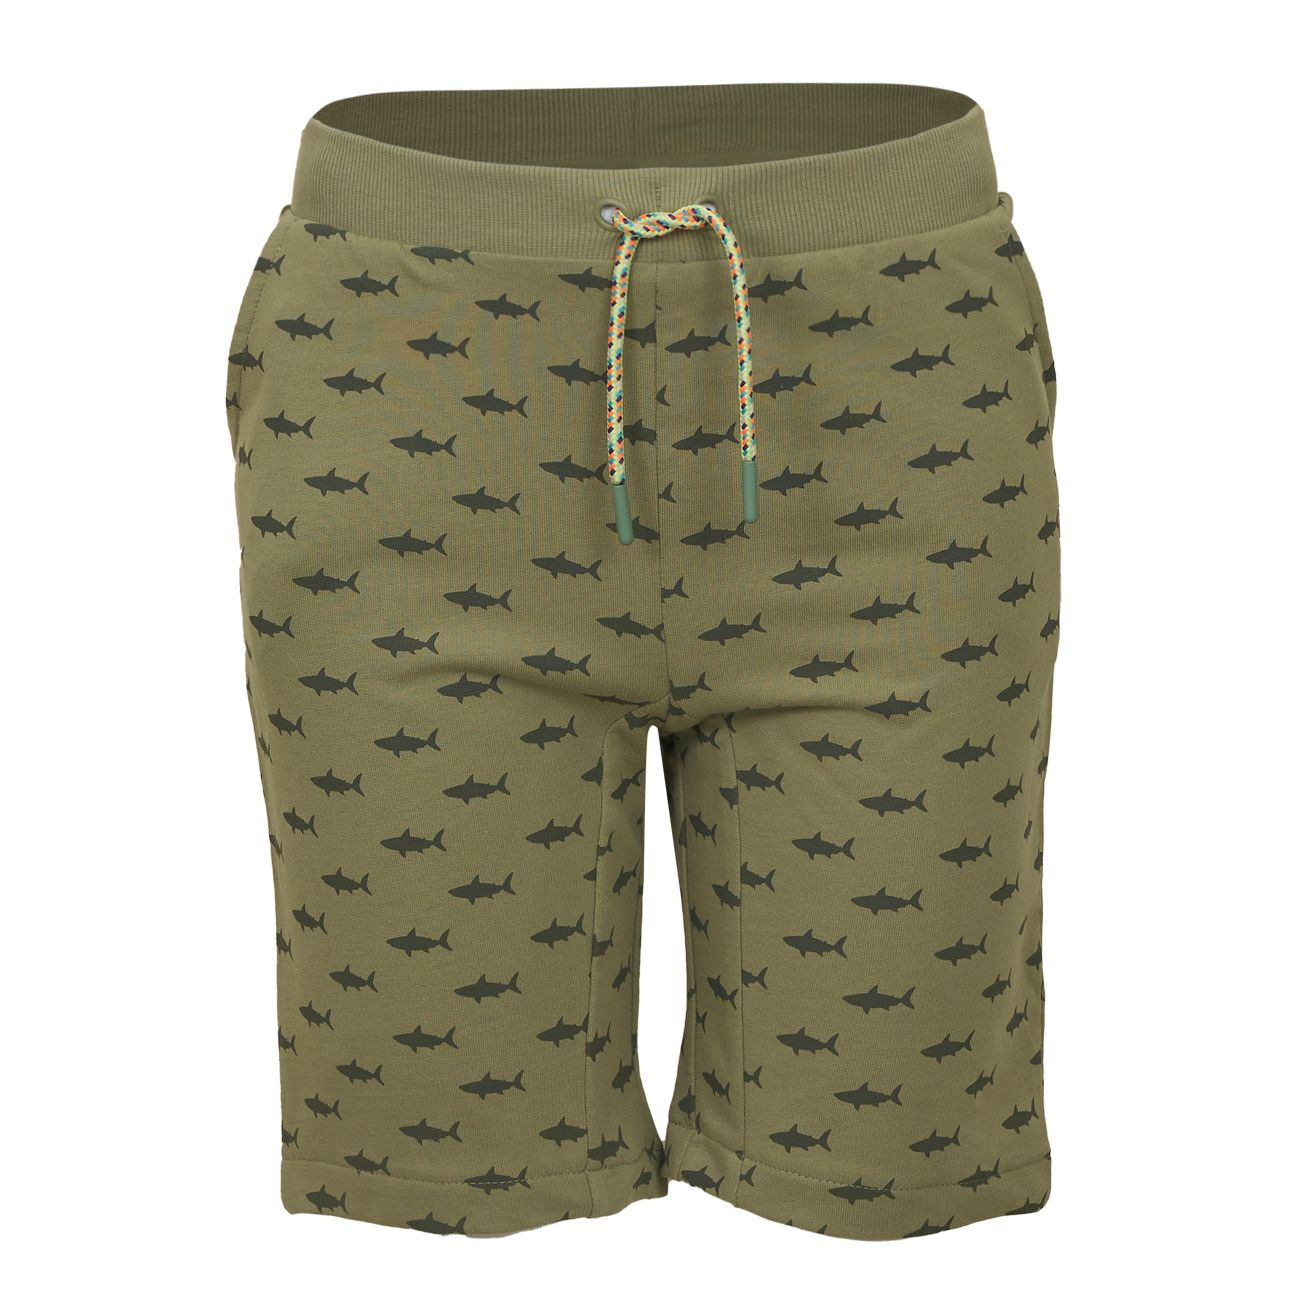 Jogginghose Haie 134 Khaki SOMEONE 100% Awesome